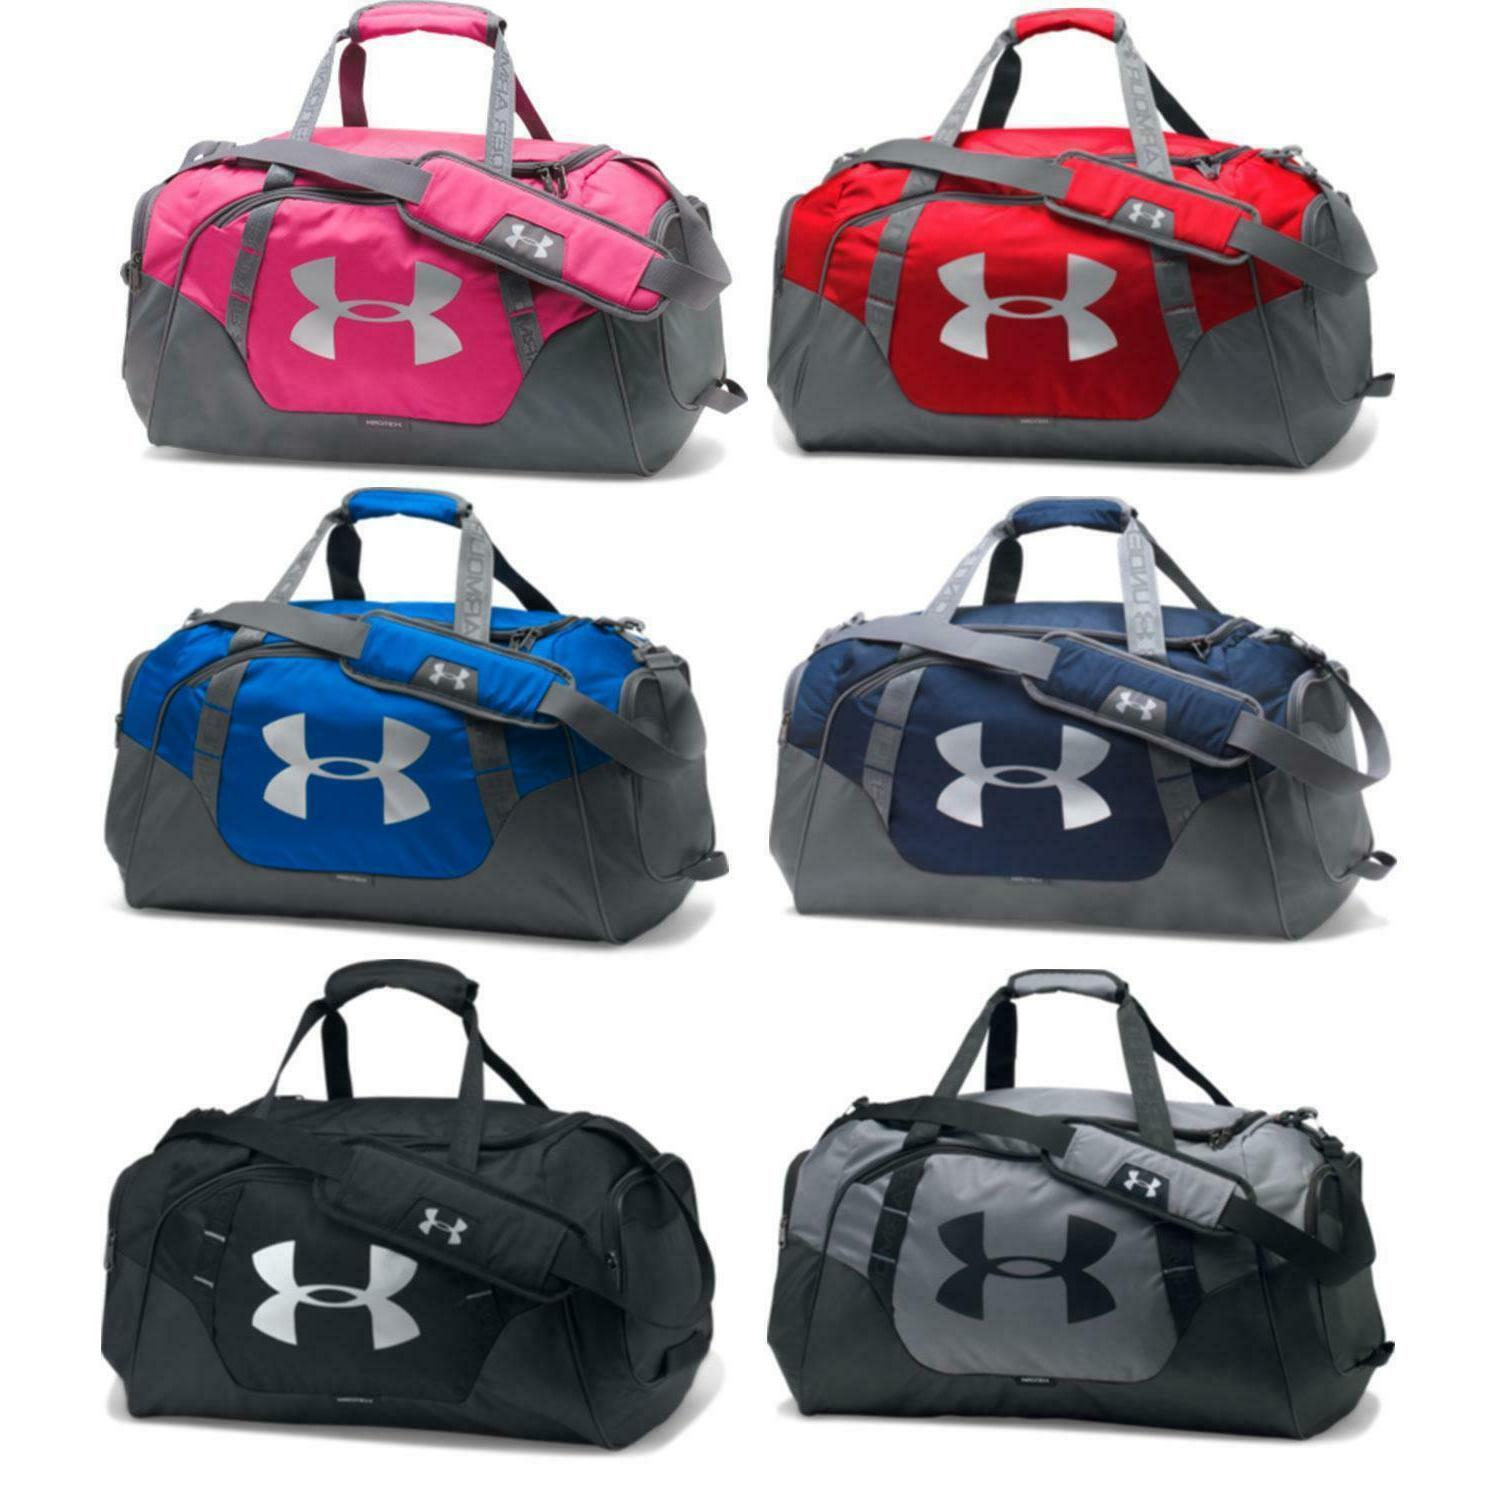 3 0 large sized undeniable duffel bag